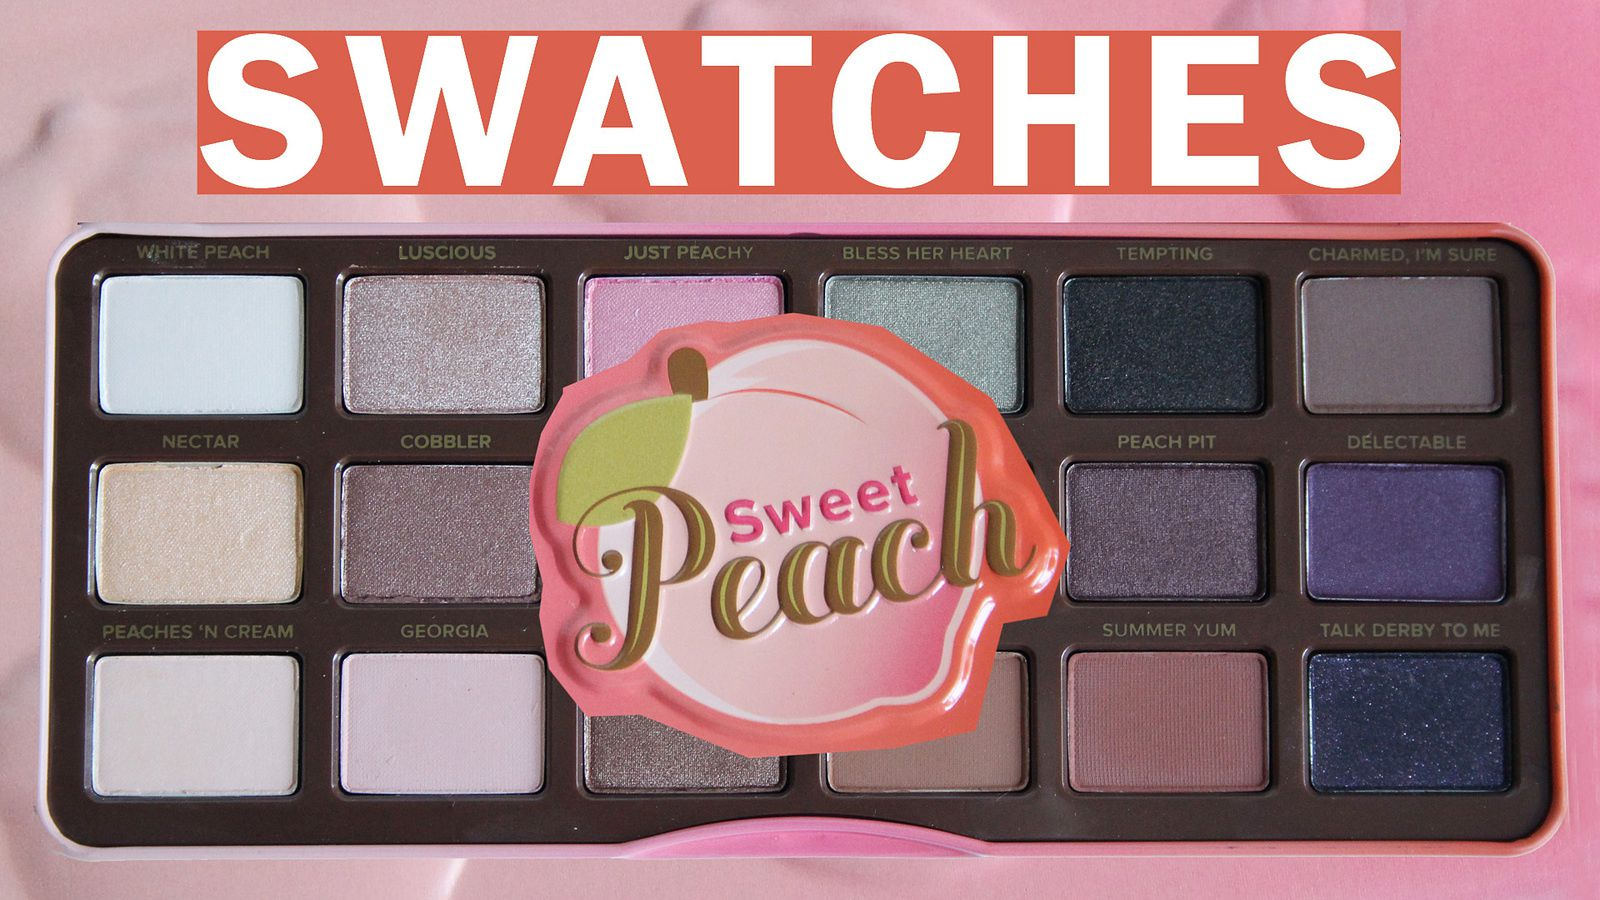 Too Faced Sweet Peach Palette | SWATCHES &amp&#x3B; Mini Review!